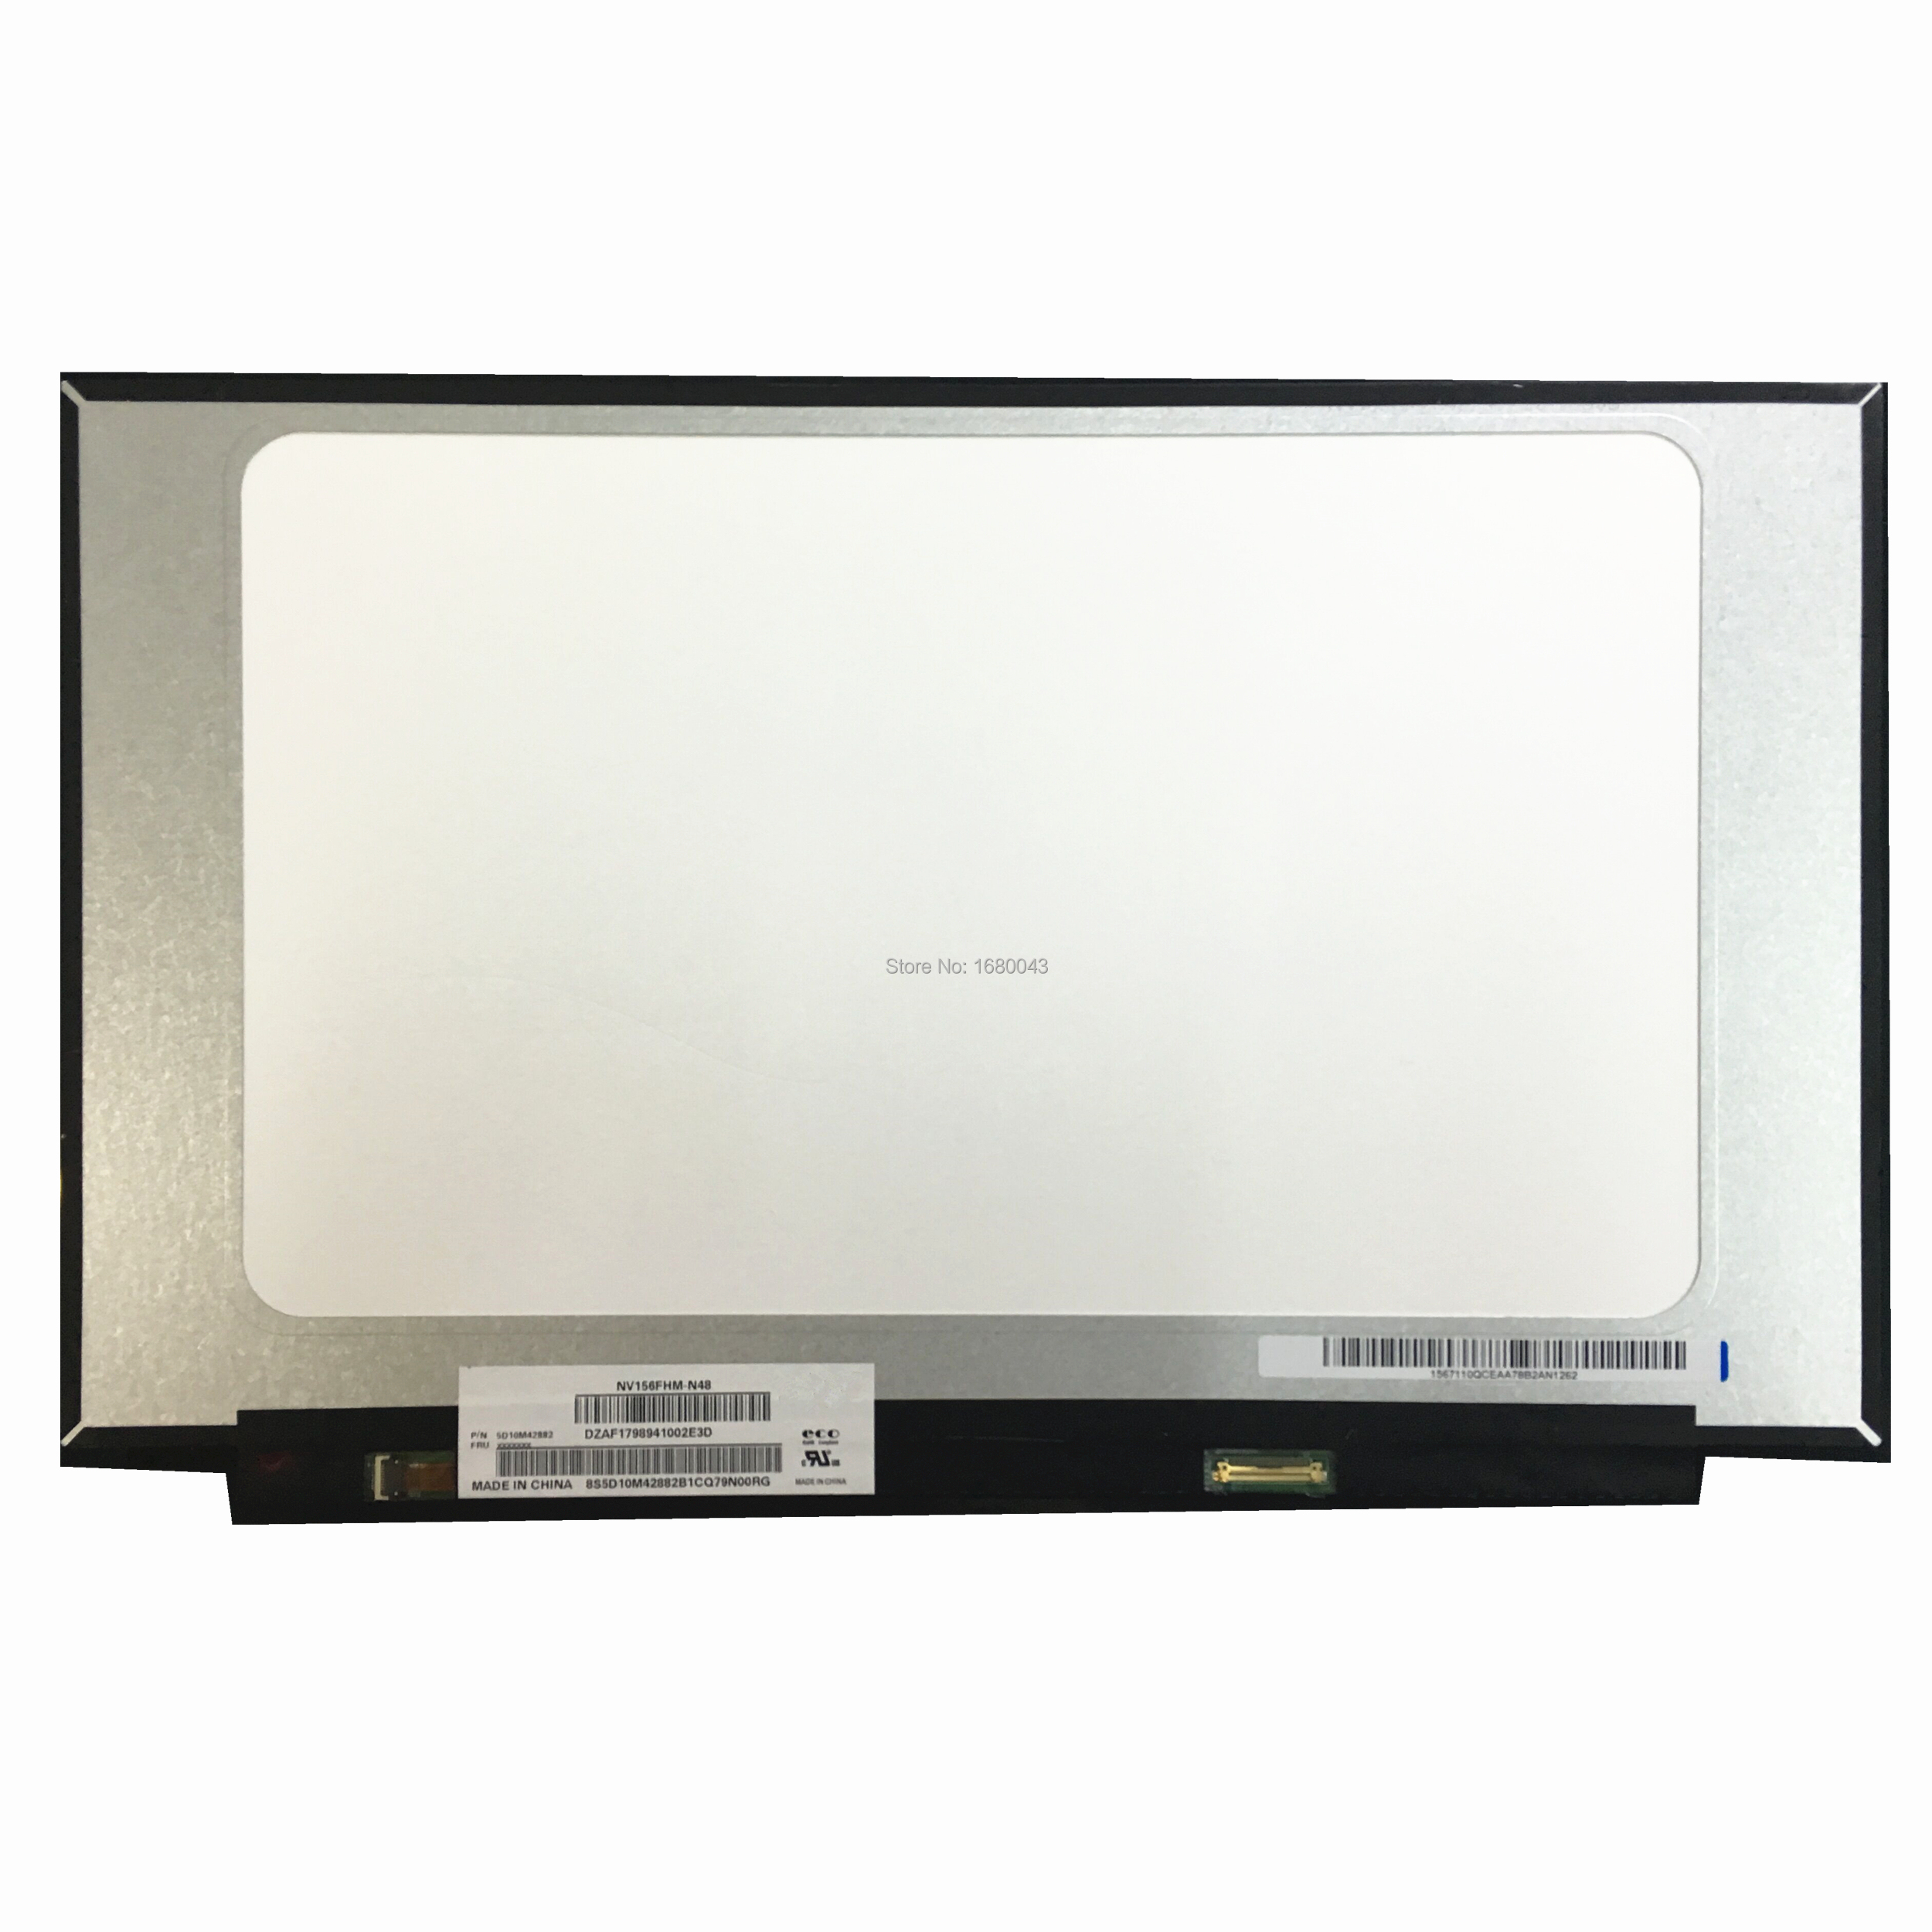 NV156FHM-N48 Fit B156HAN02.2 B156HAN02.1 B156HAN02.4 EDP  B156HAN02.3 30 PIN Laptop LCD SCREEN PANEL With No Screw Holes